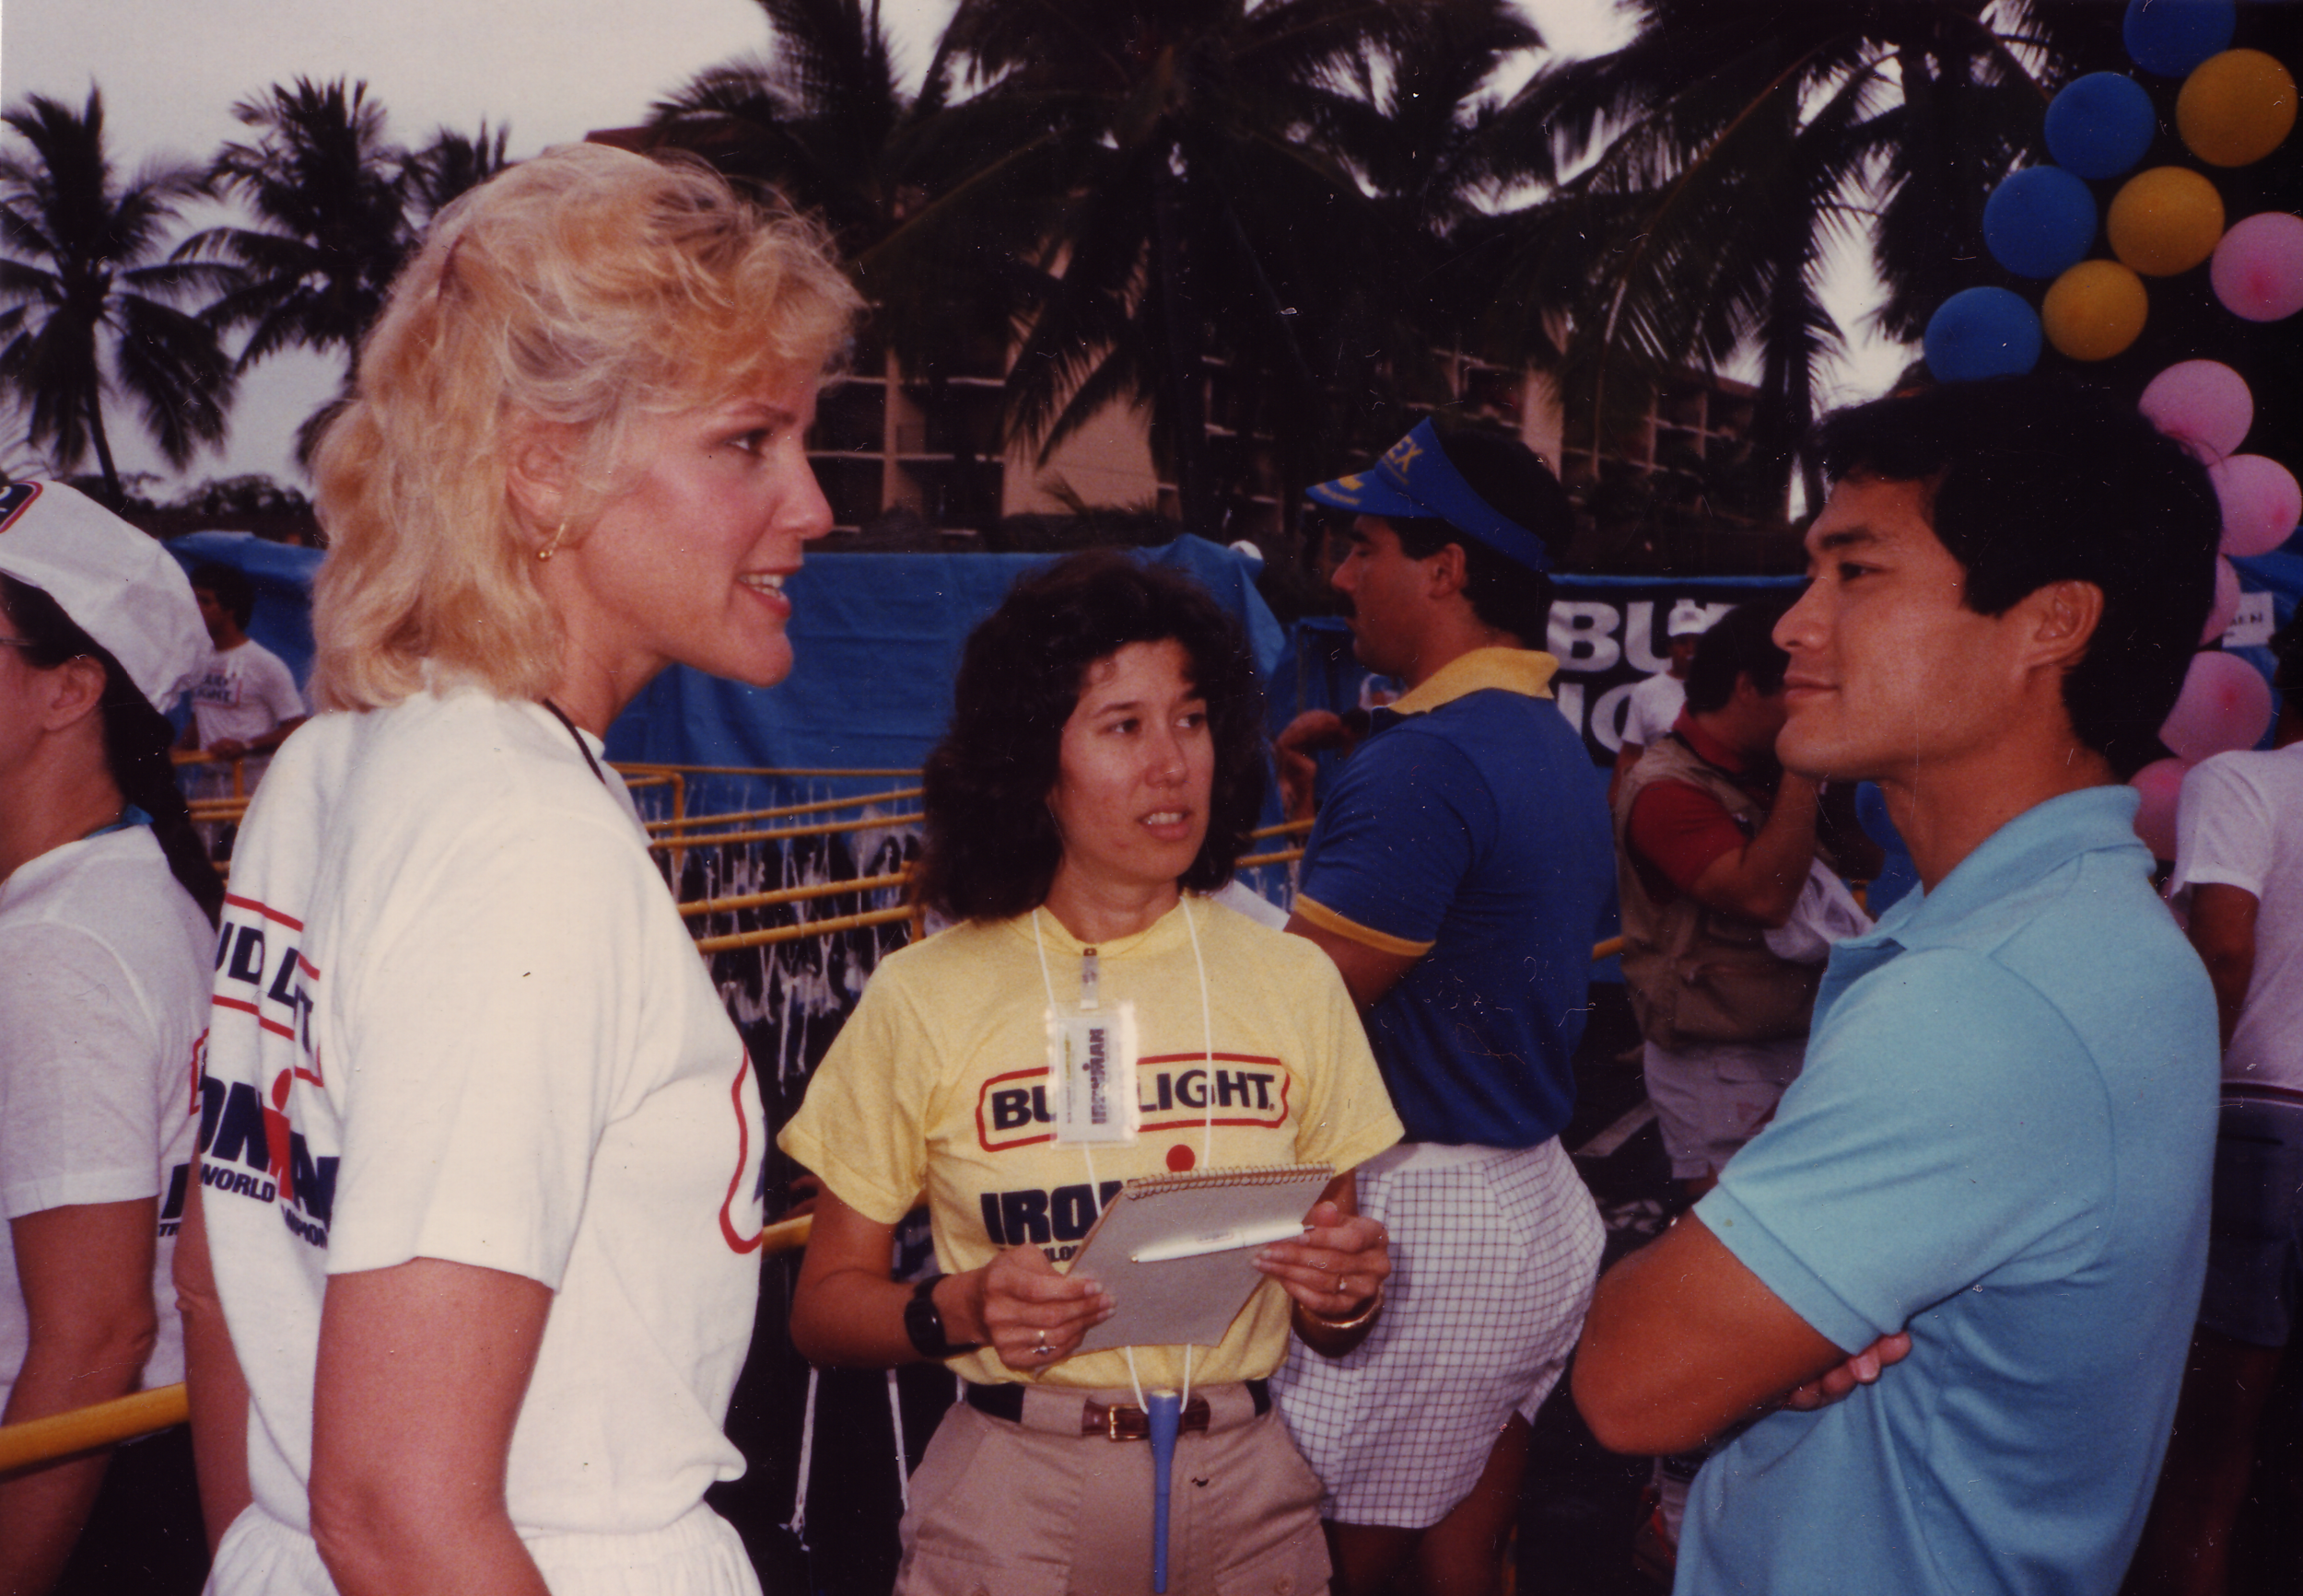 Valerie Silk and Earl Yamaguchi in the transition area of the 1985 Hawaiian Ironman.